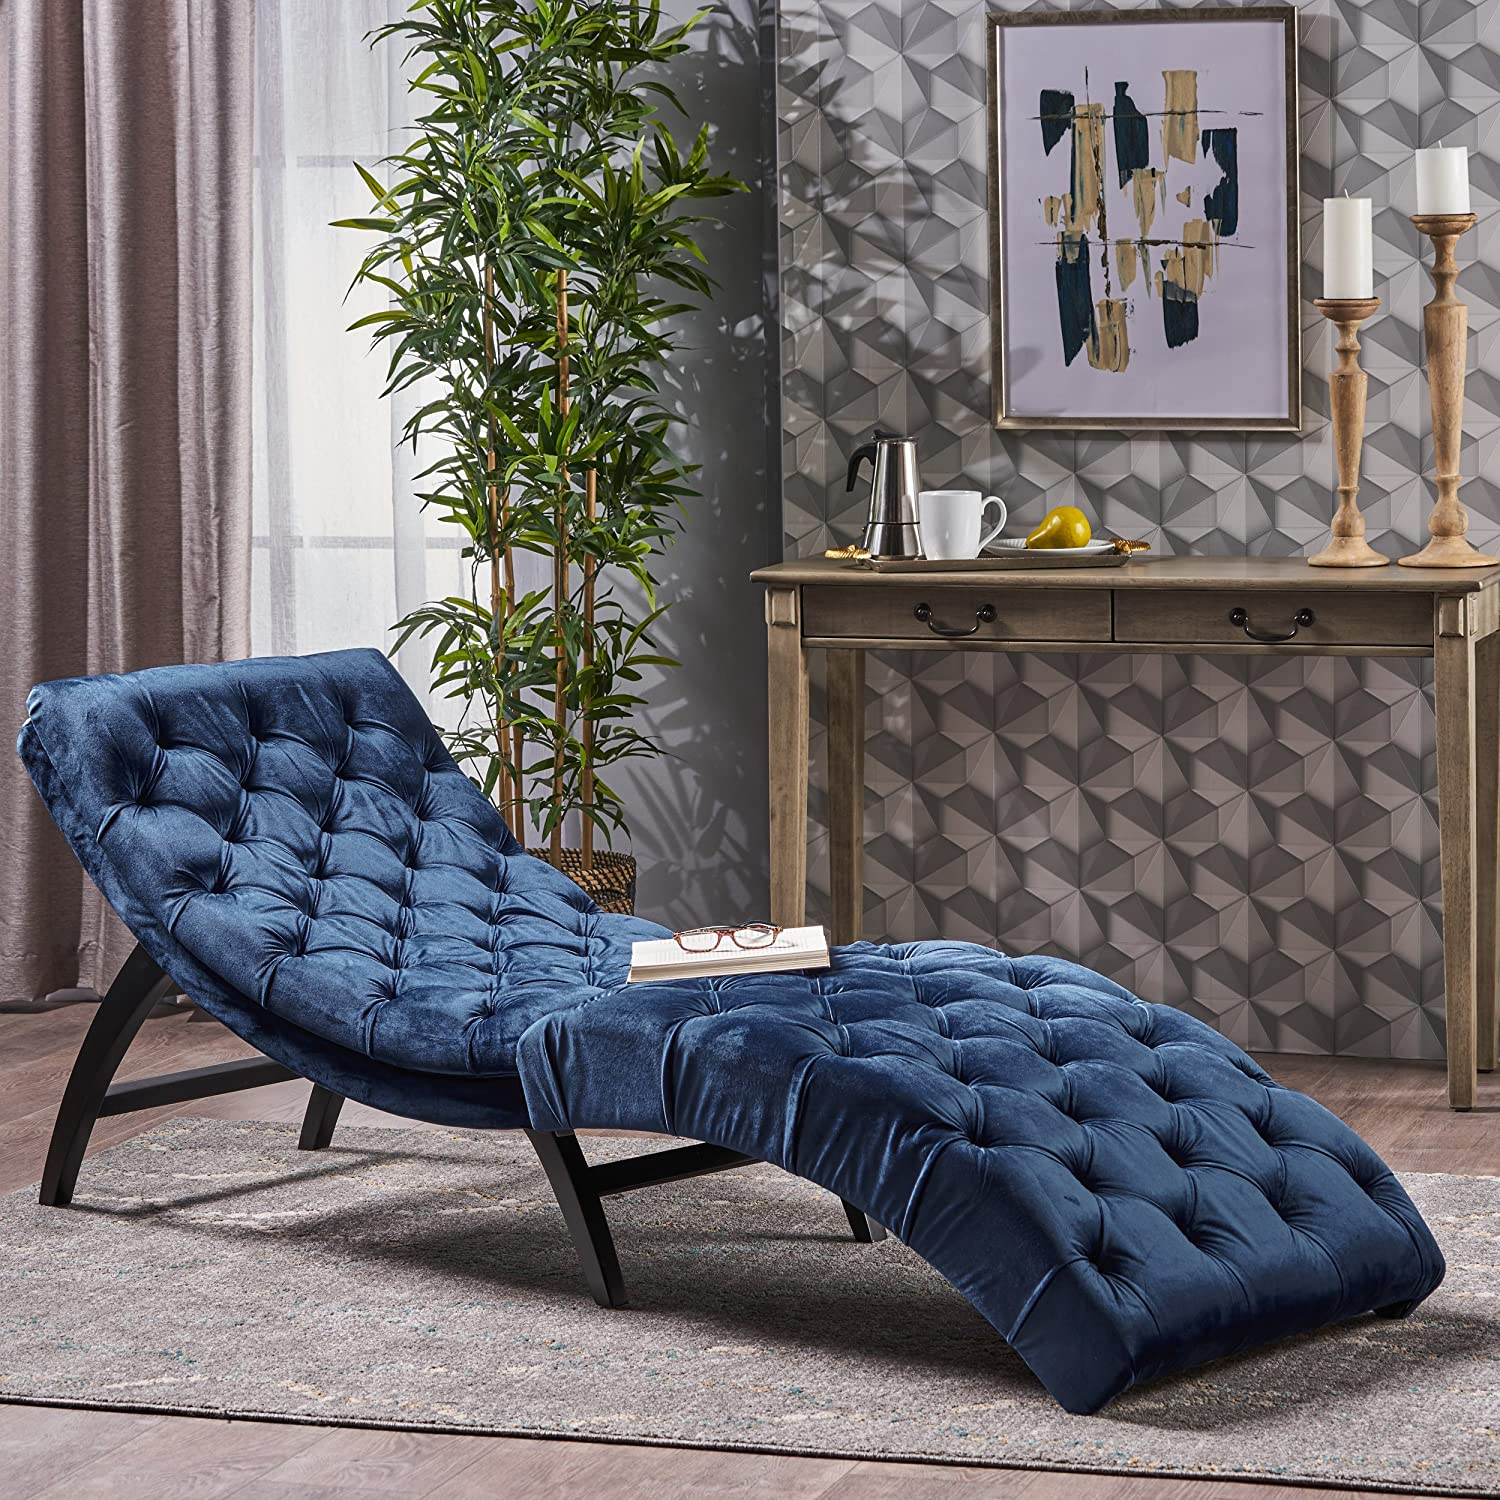 Garamond Cobalt Velvet Chaise Lounge Great Deal Furniture